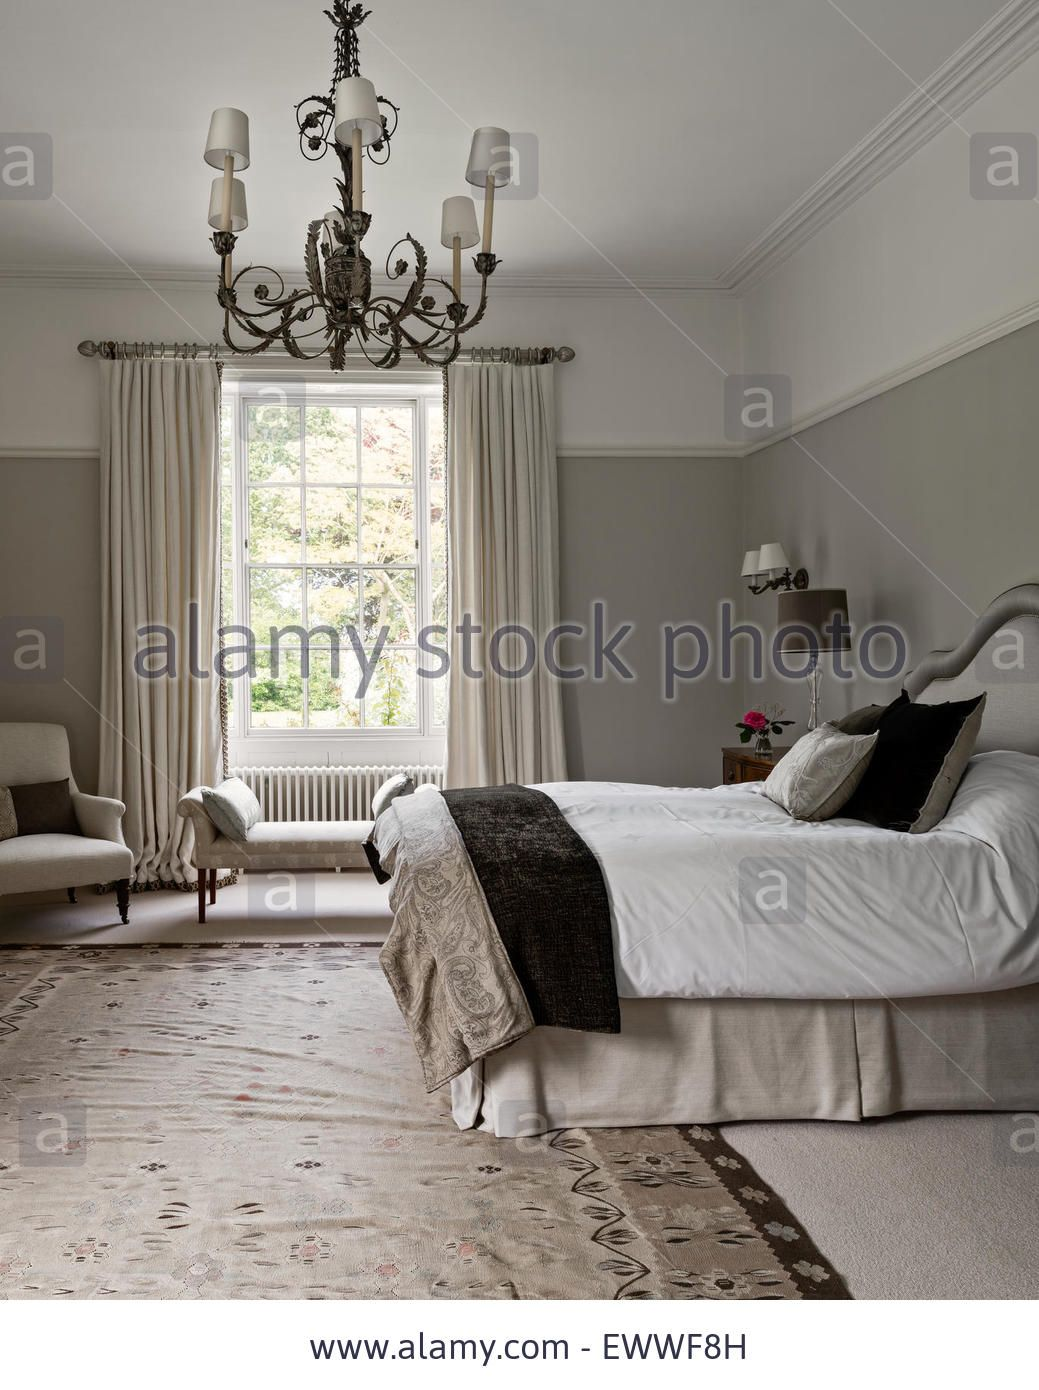 Elegant Bedroom Painted In Pale Walnut By Dulux With An Aubusson Rug. The  Curtains Are In Abbot And Boydu0027s Lins Brodes Stock Photo